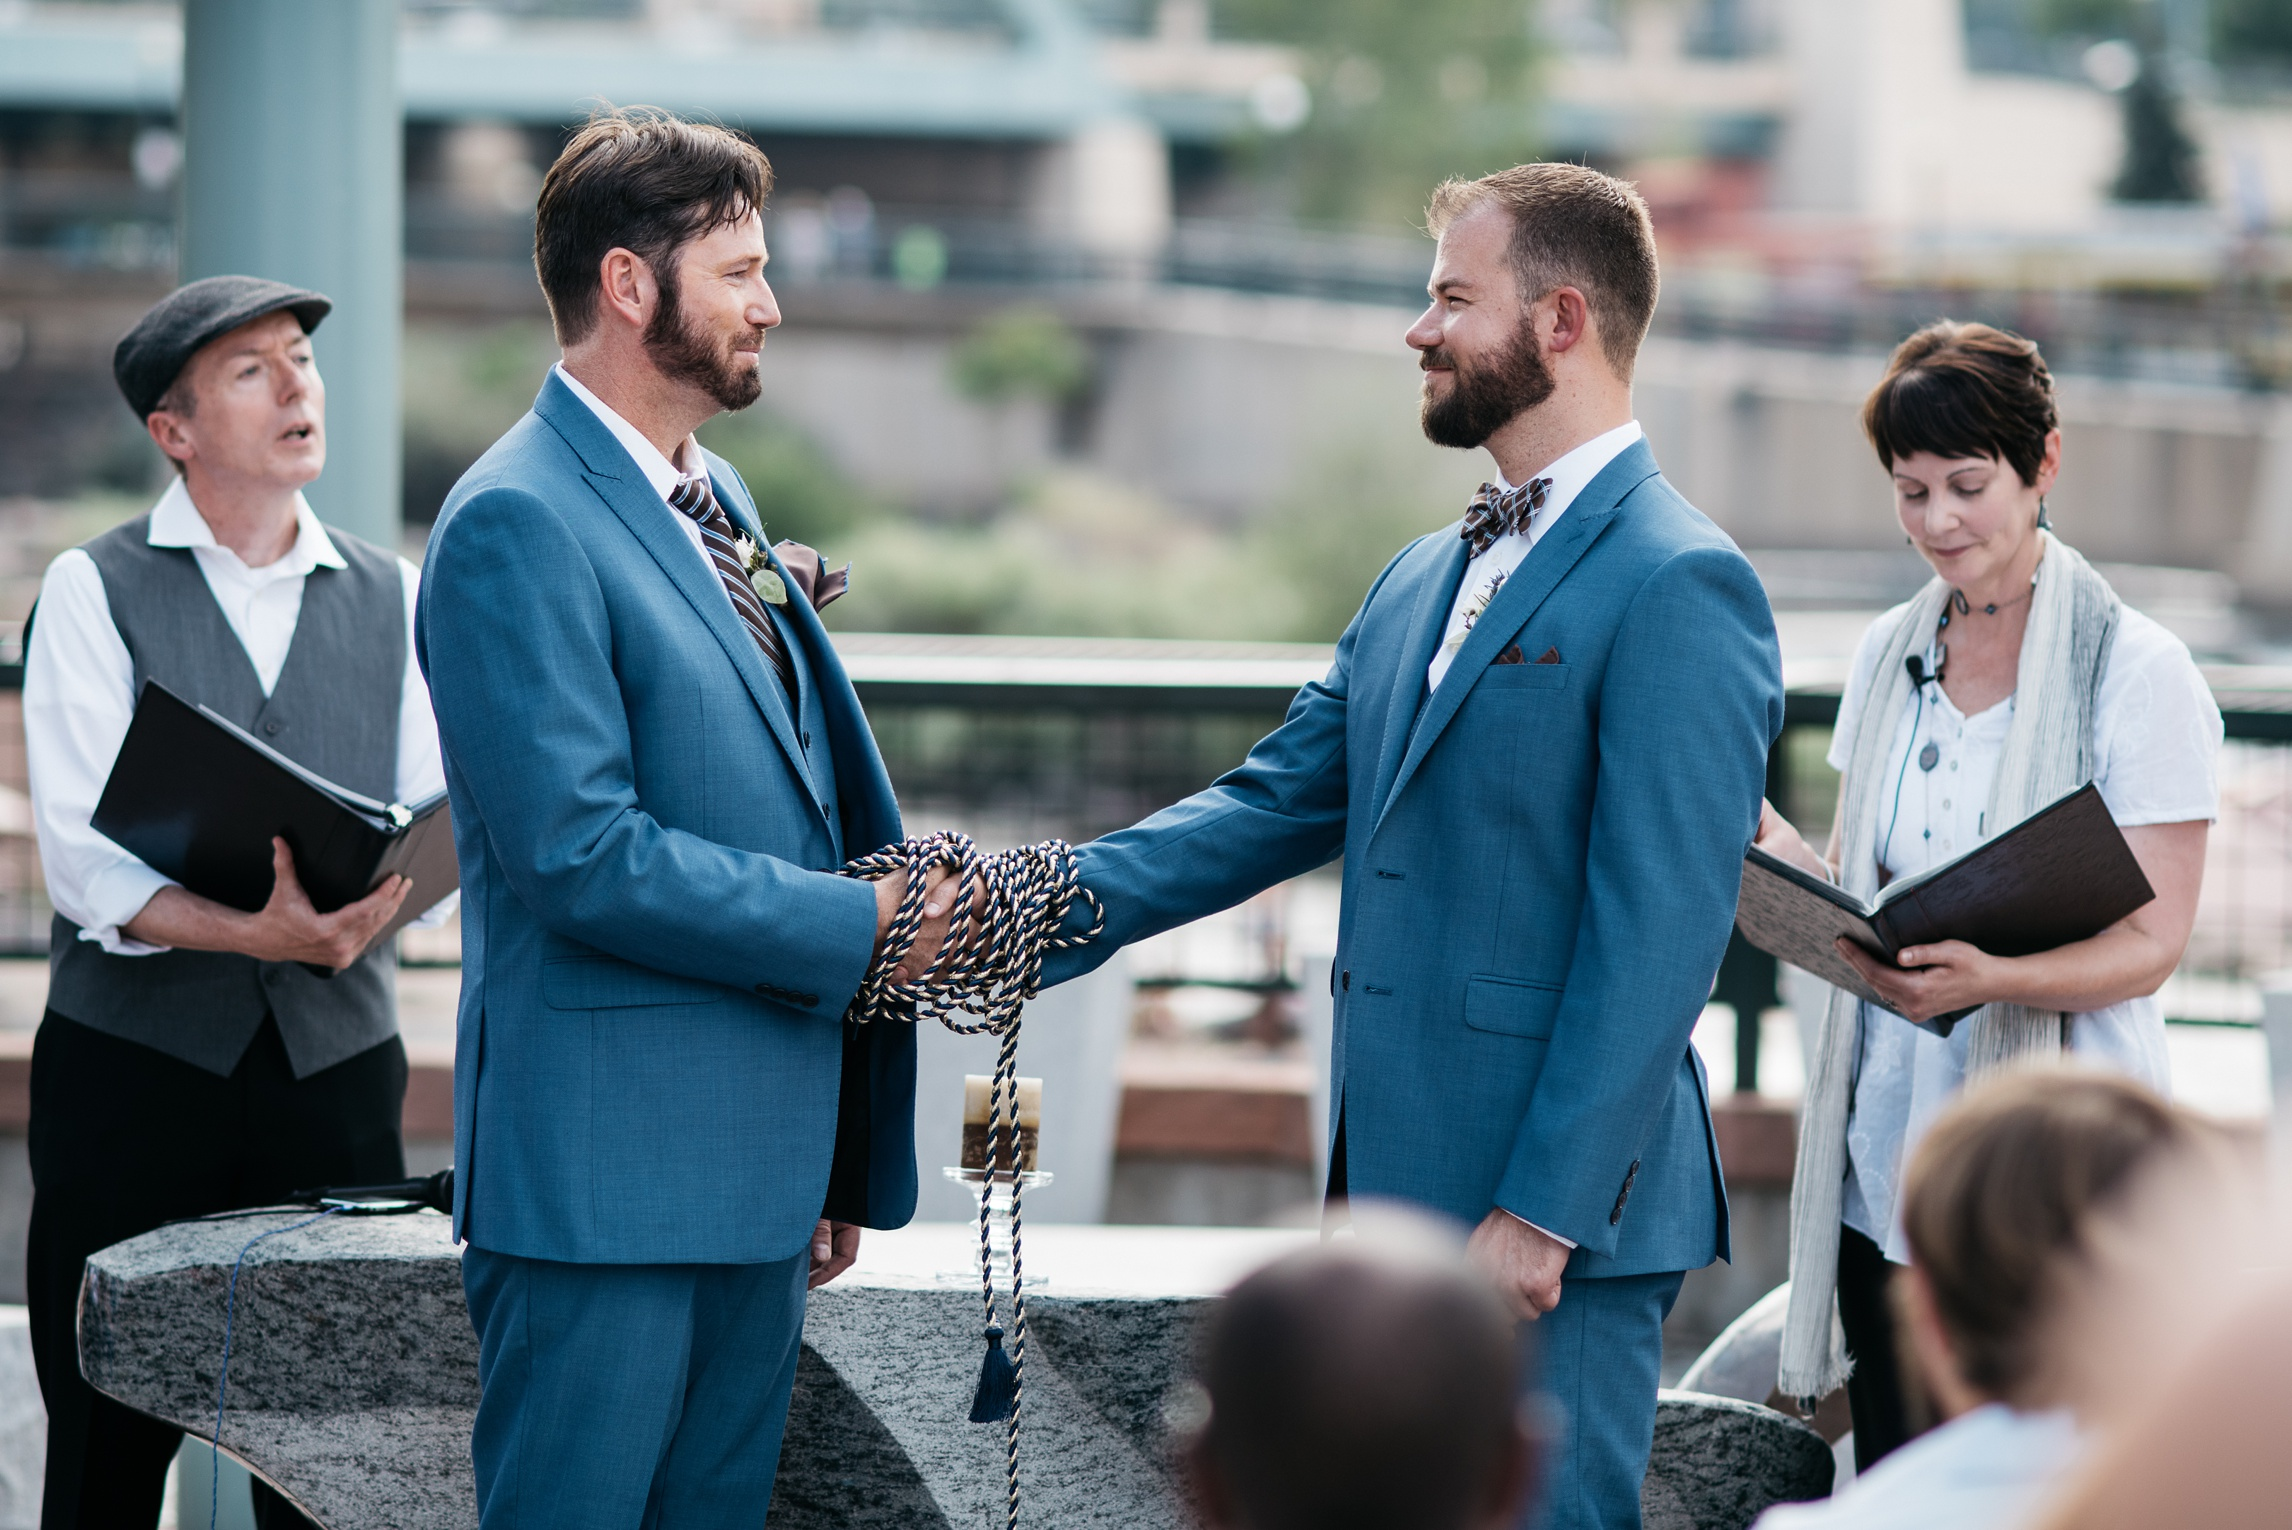 Weston and Karl participate in a wedding Handfasting Ceremony. Wedding photography by Sonja Salzburg of Sonja K Photography.